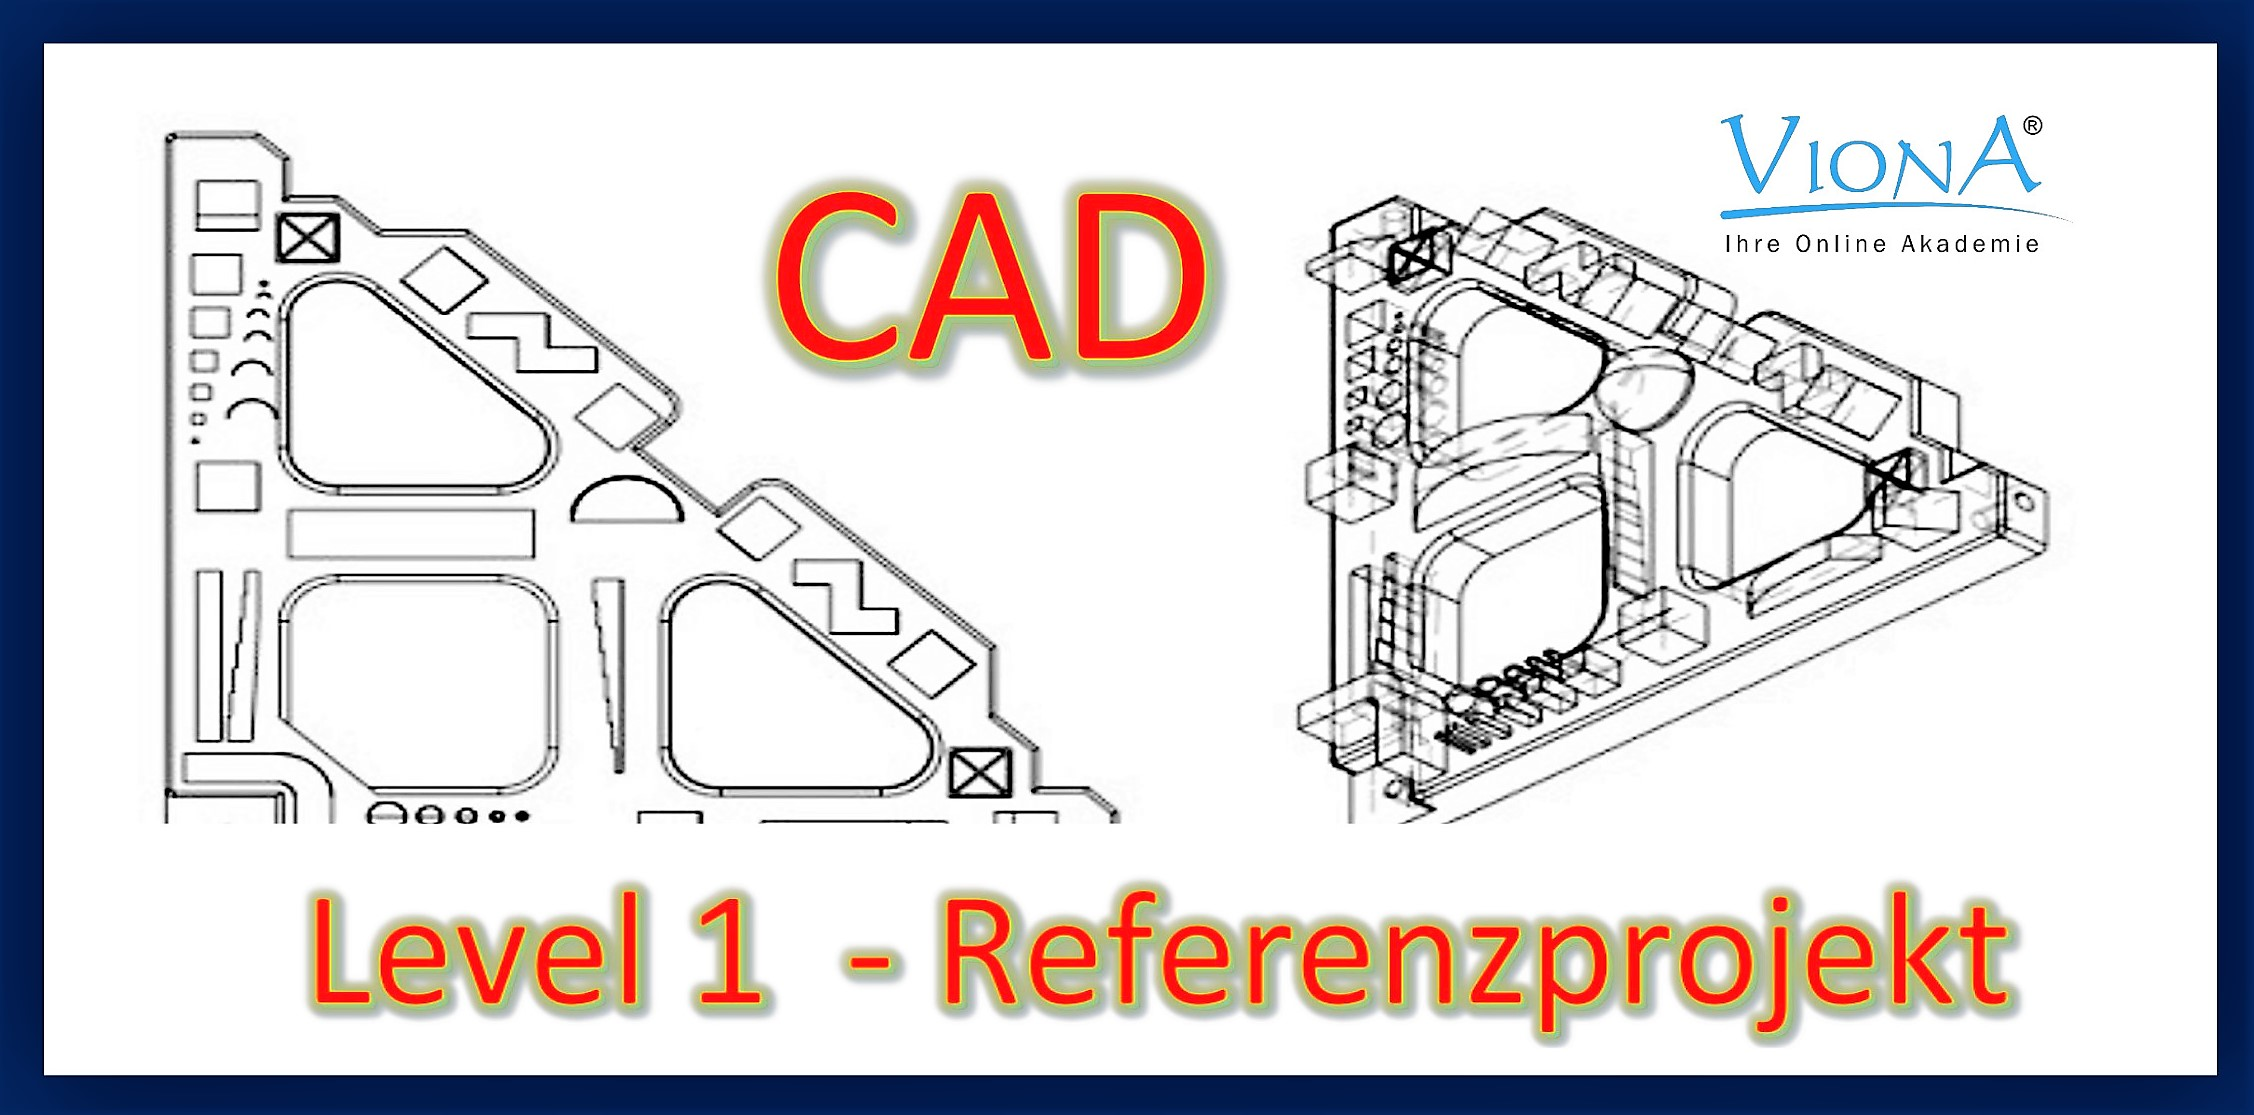 VIONA - CAD, Level 1